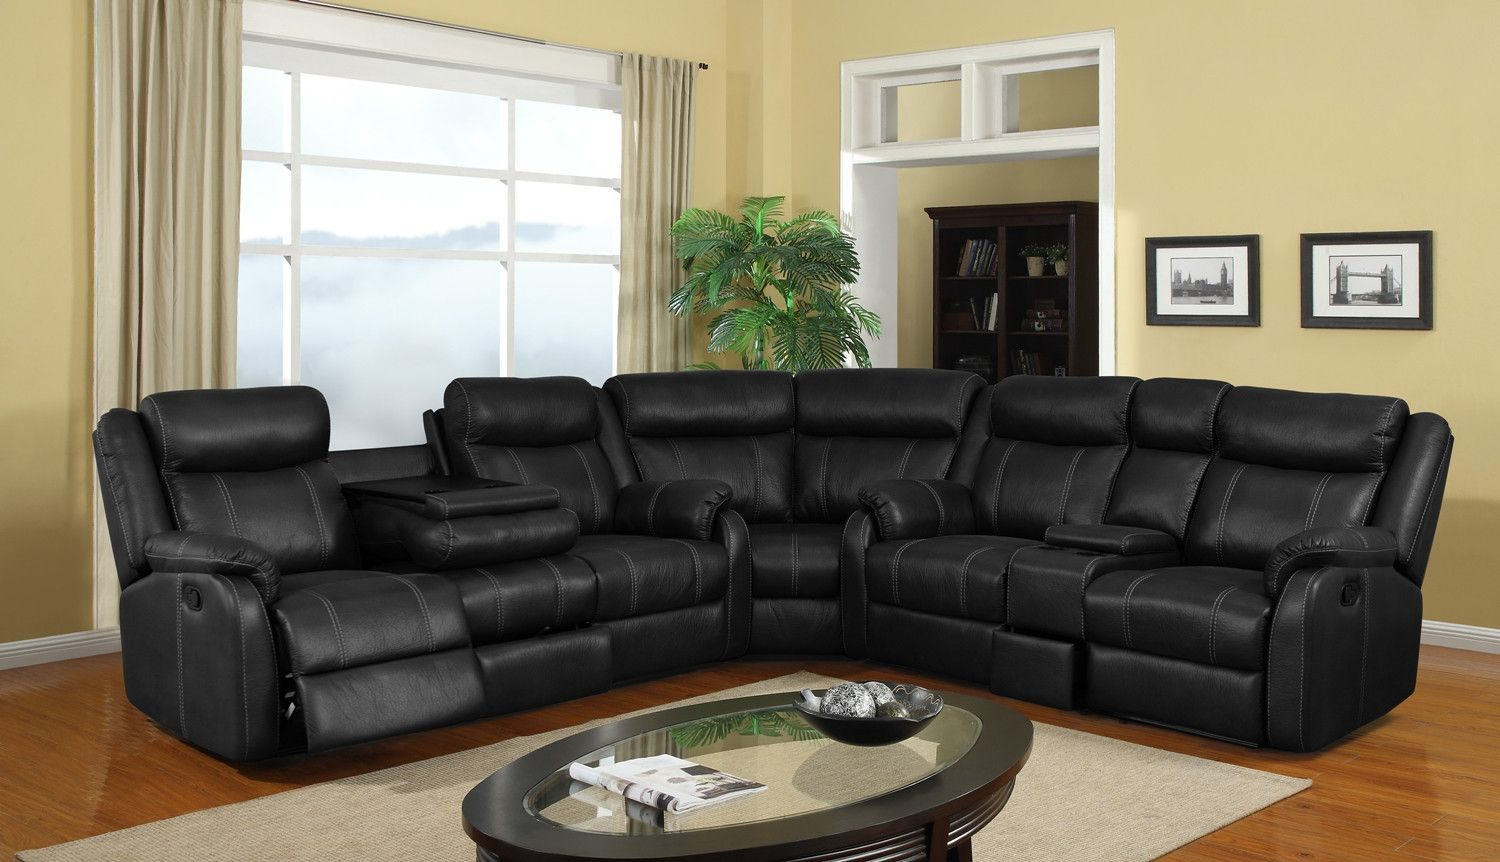 201 The Dona Reclining Sectional Chocolate Den Couch